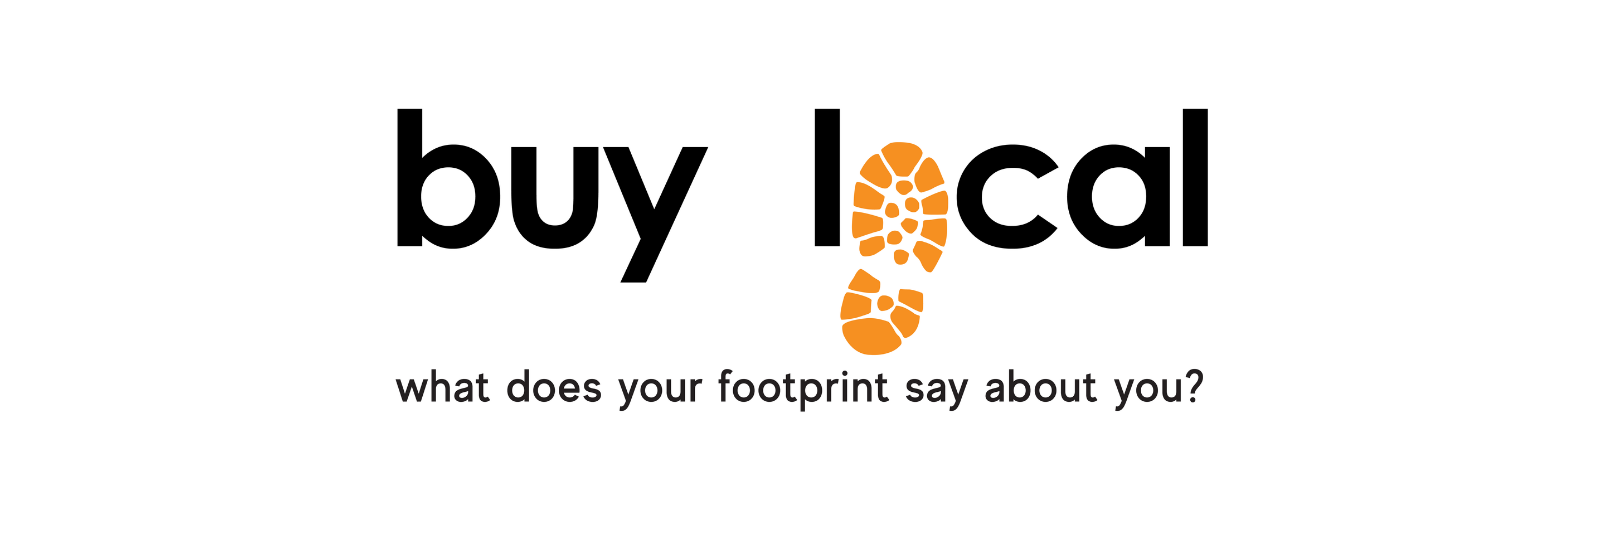 Buy Local - What Does Your Footprint Say About You?